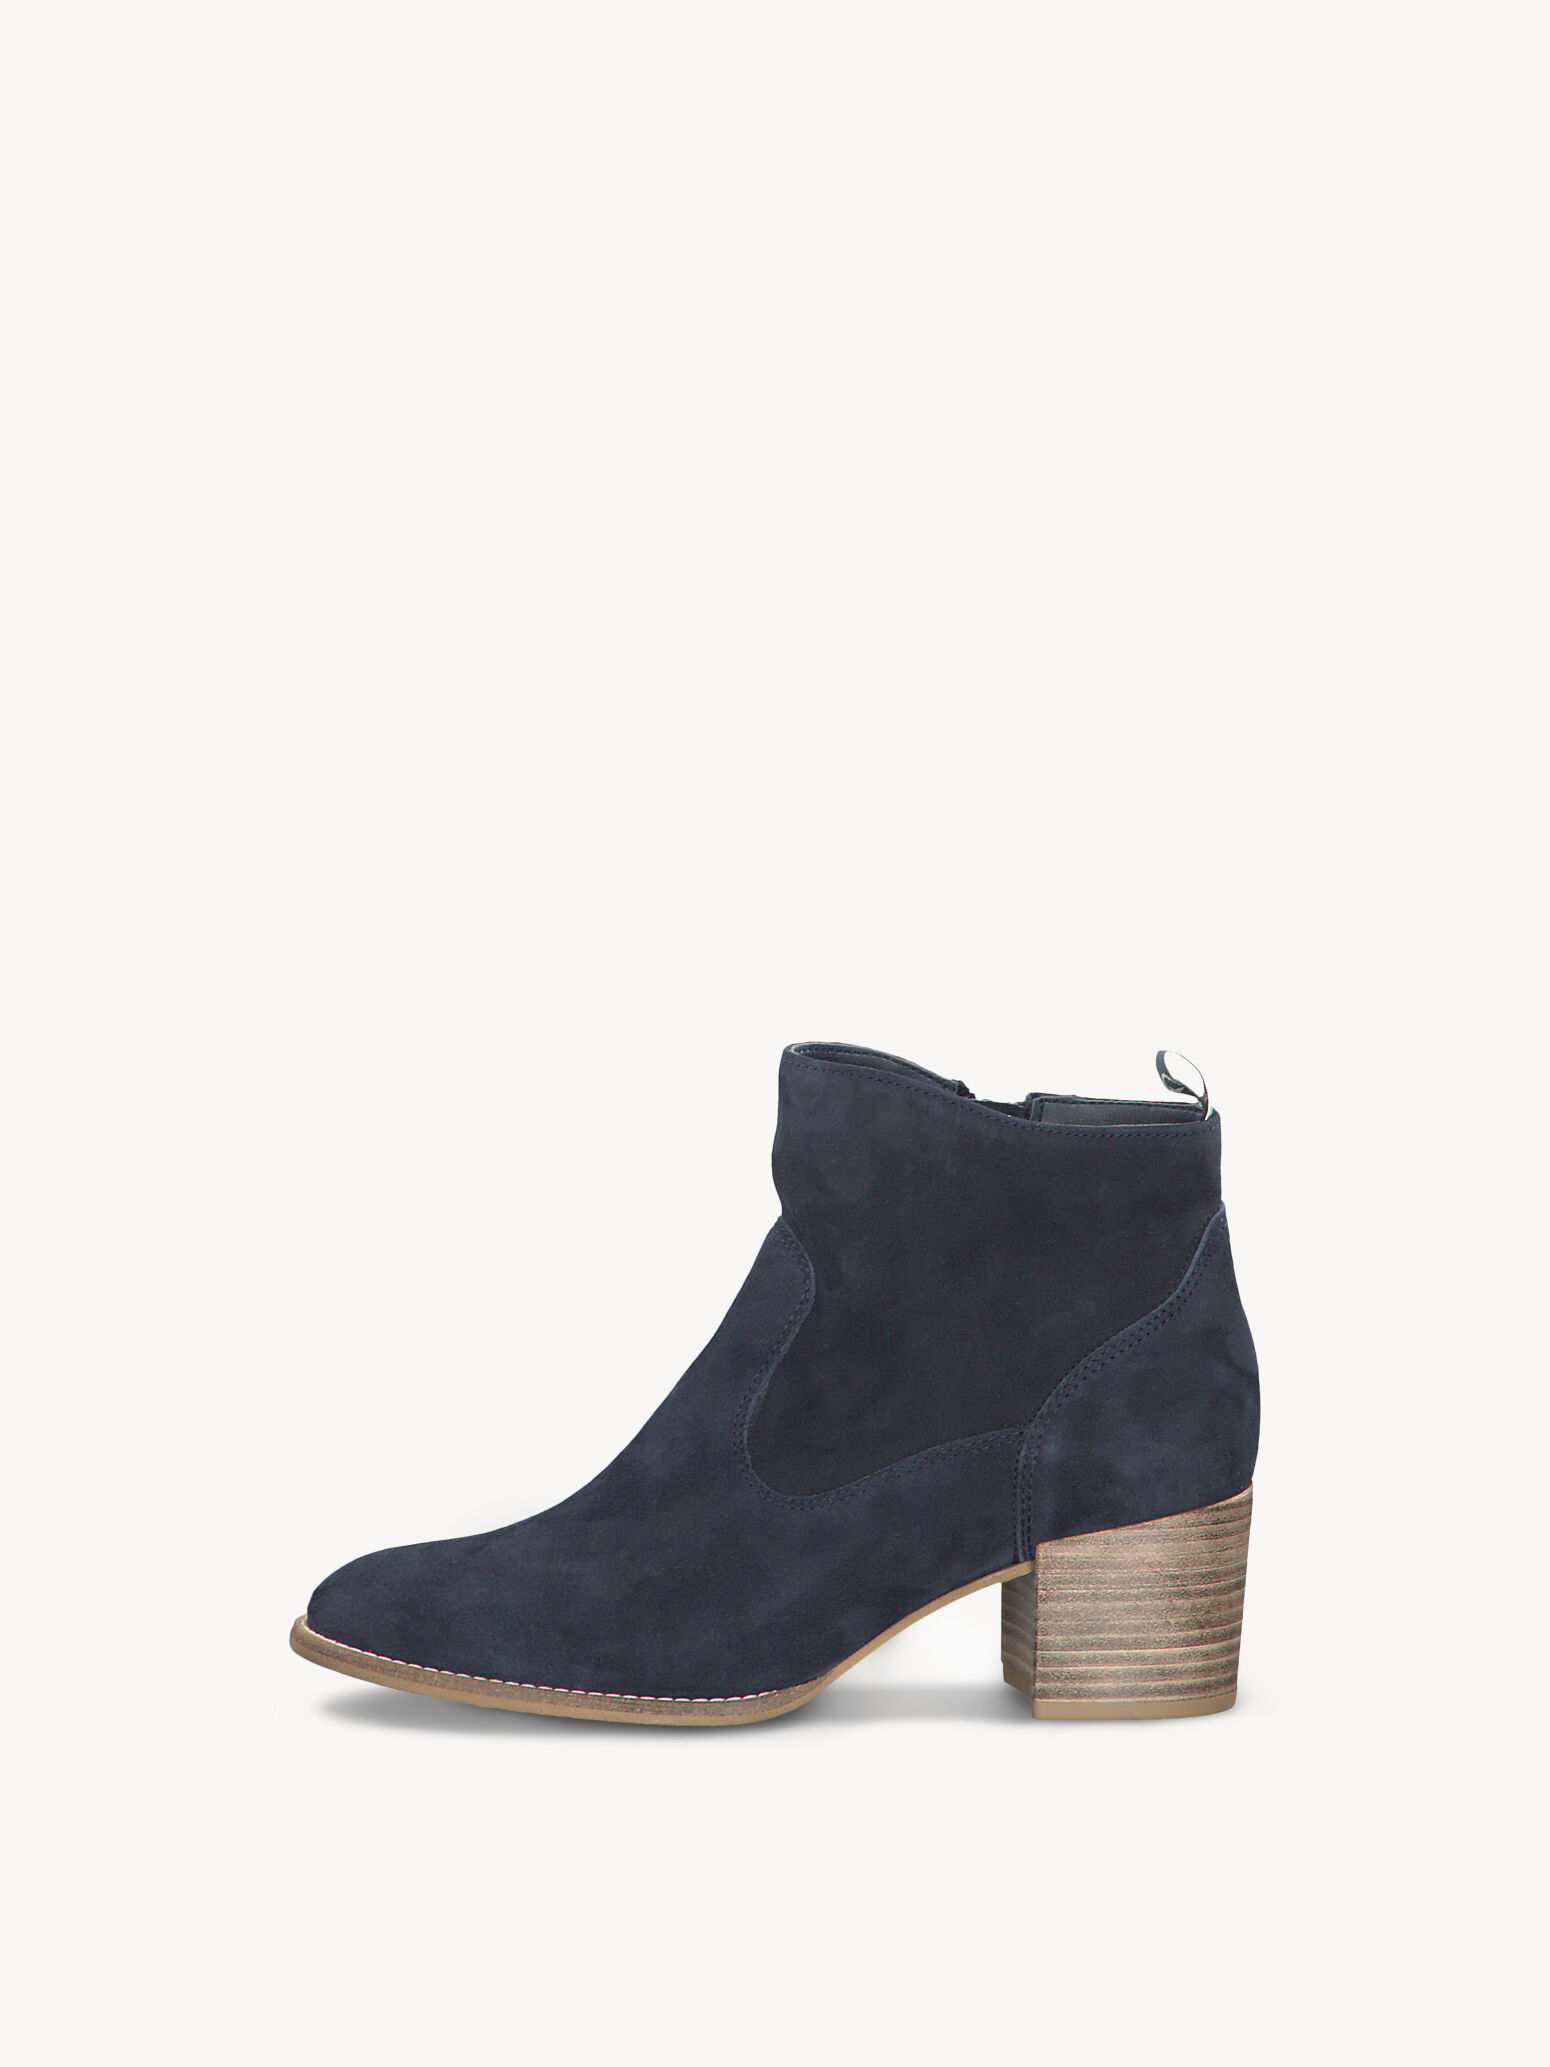 Buy Tamaris Booties online now!